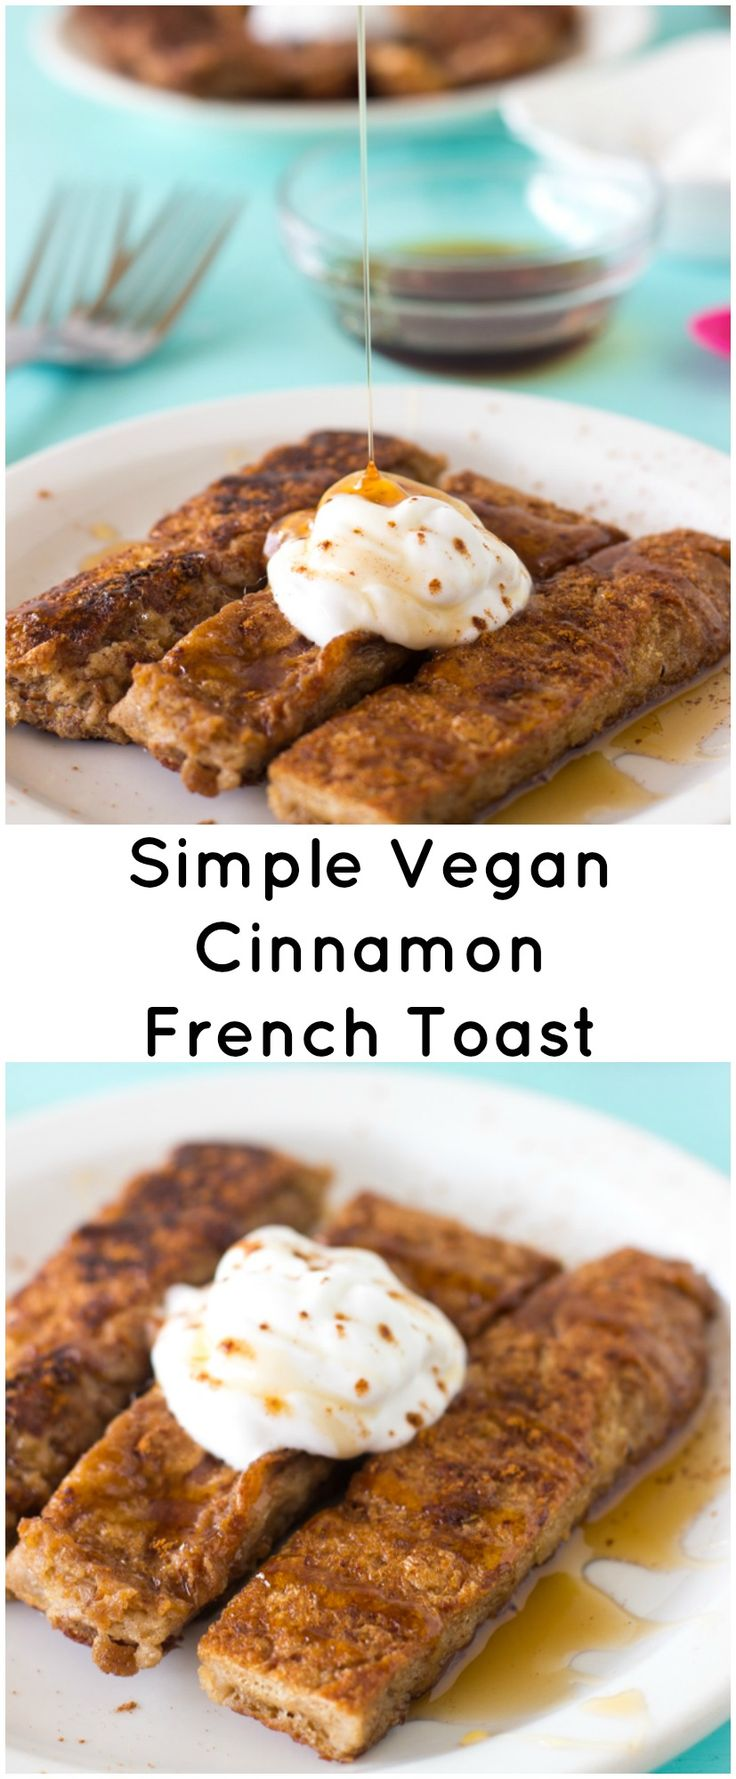 This Simple Vegan Cinnamon French Toast